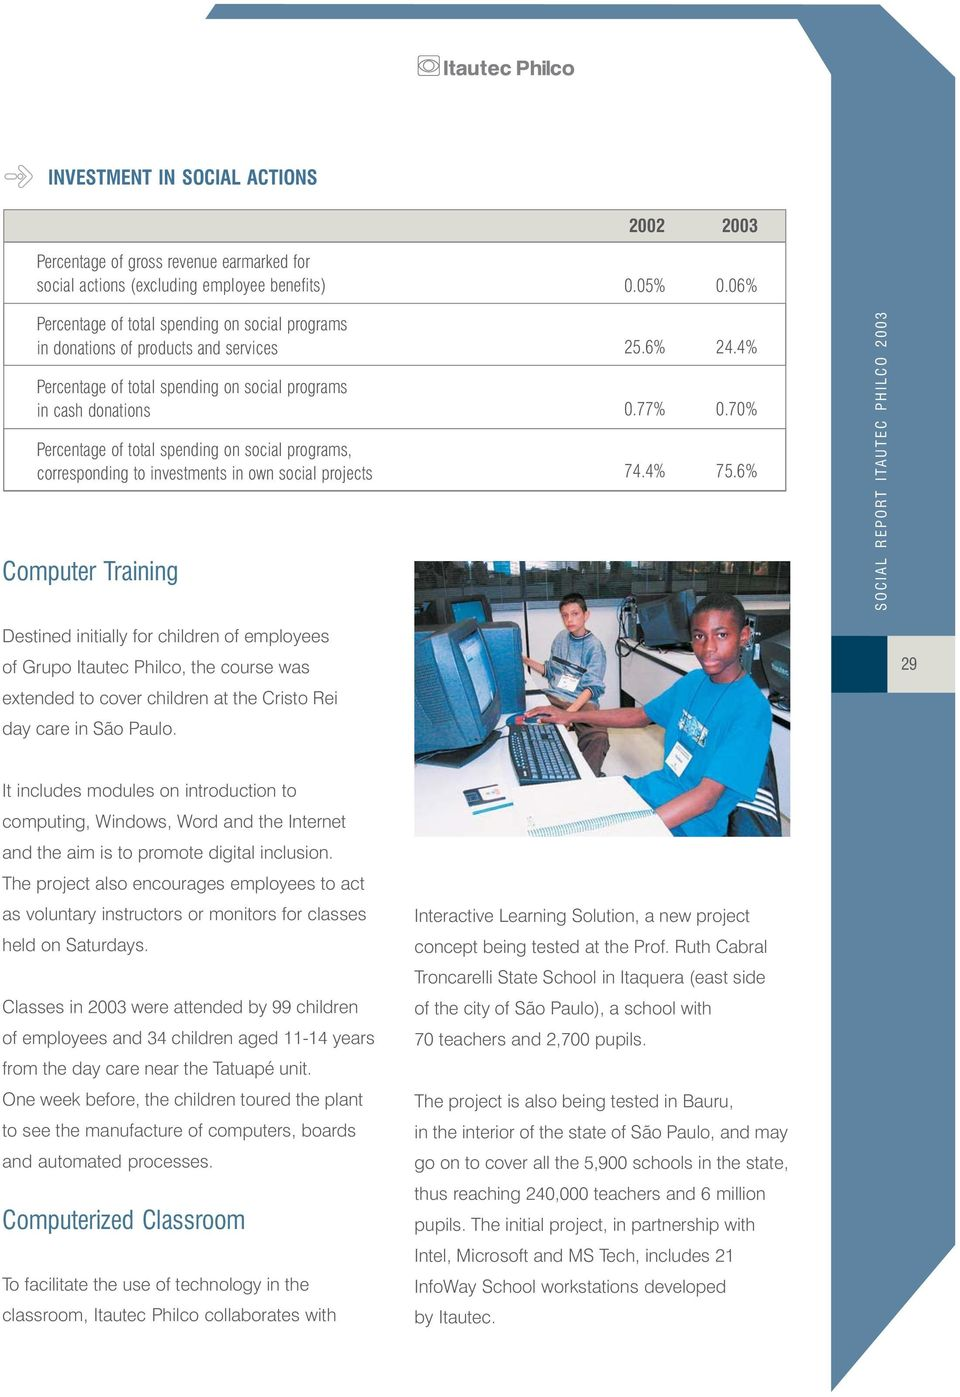 programs, corresponding to investments in own social projects Computer Training 25.6% 0.77% 74.4% 24.4% 0.70% 75.